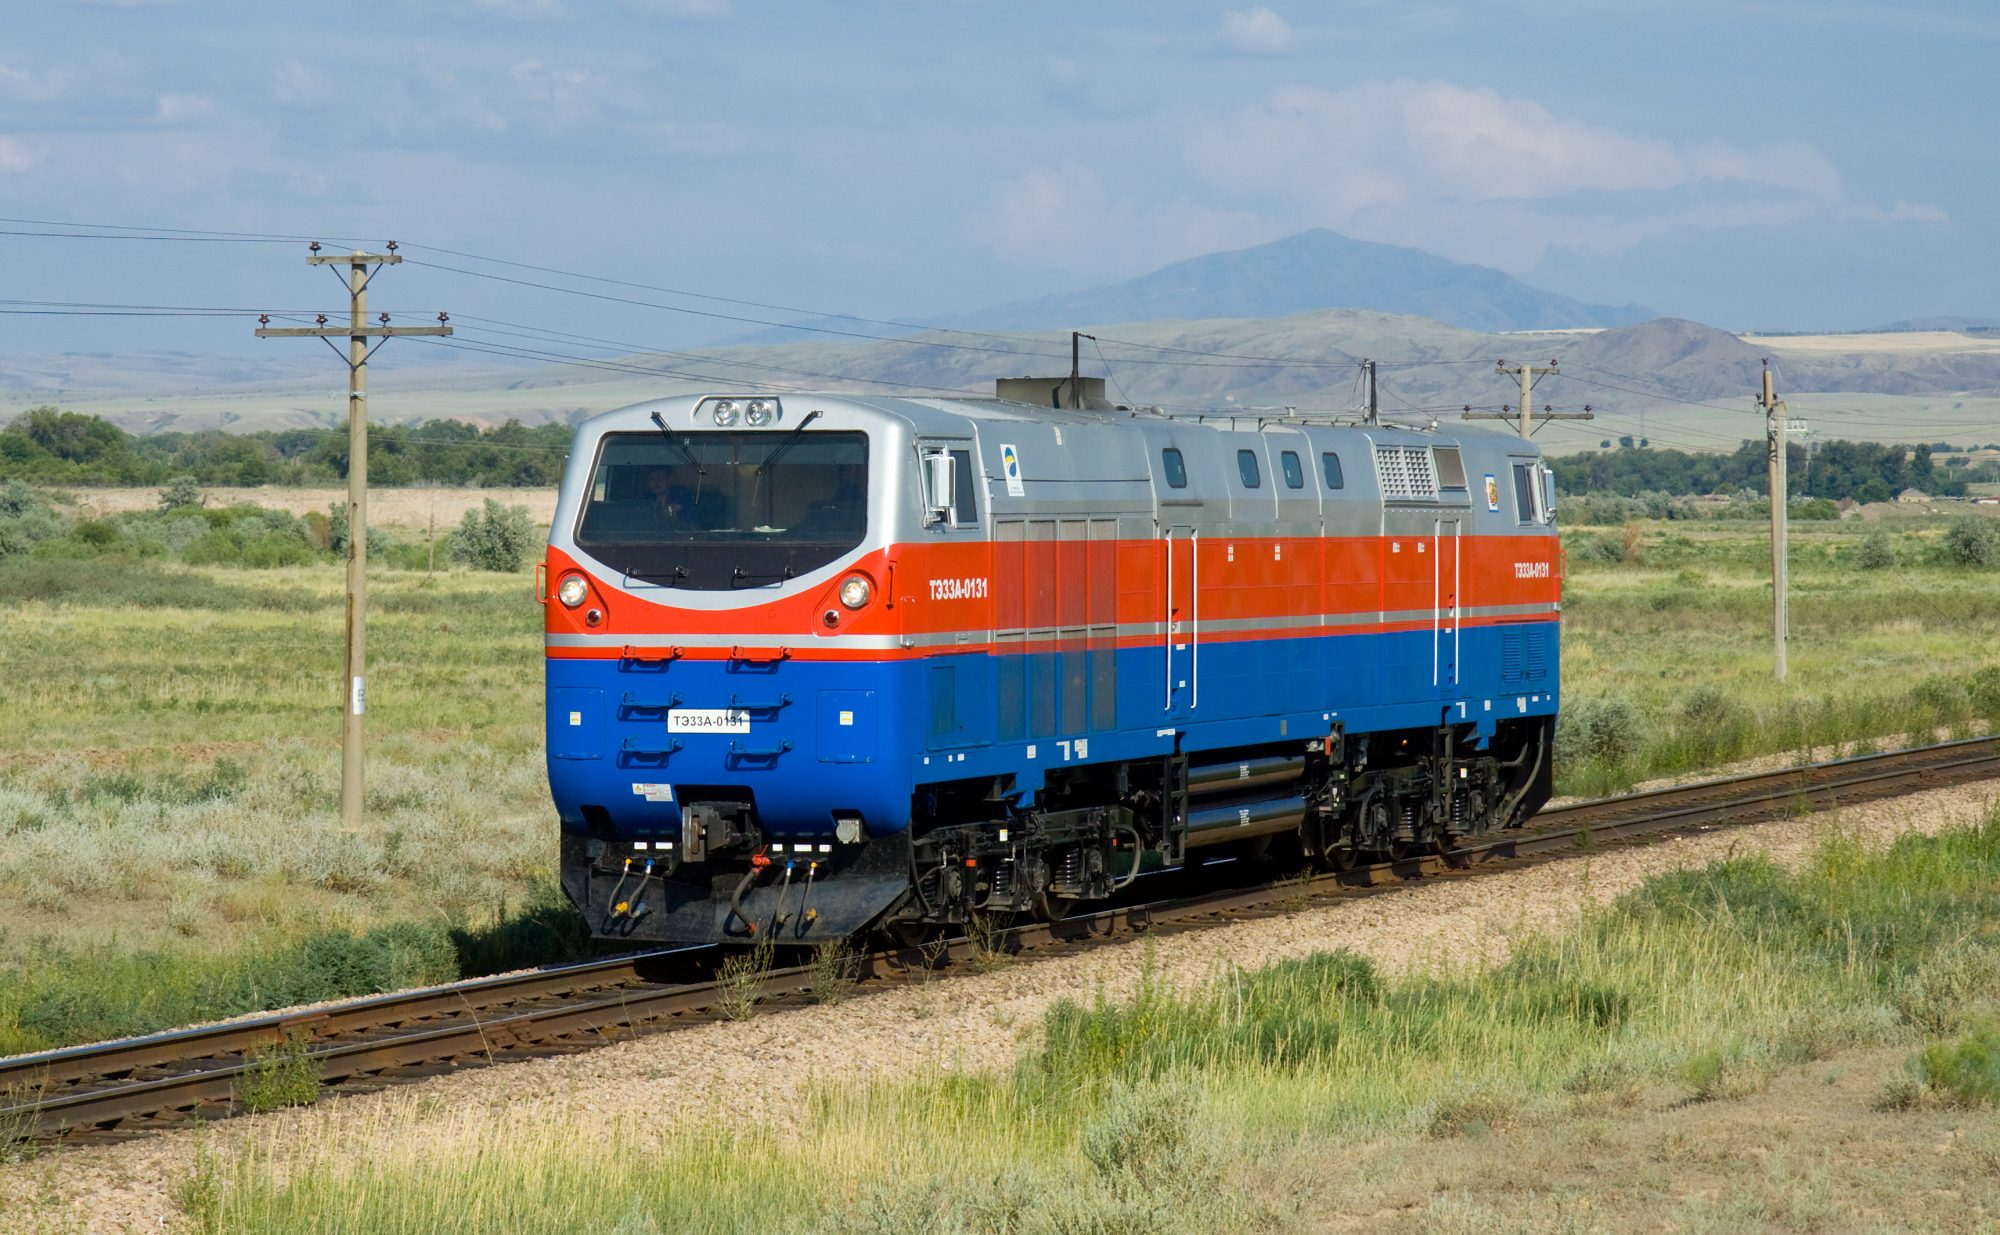 A TE33A locomotive in Kazakhstan. Photo: Kabelleger / David Gubler.